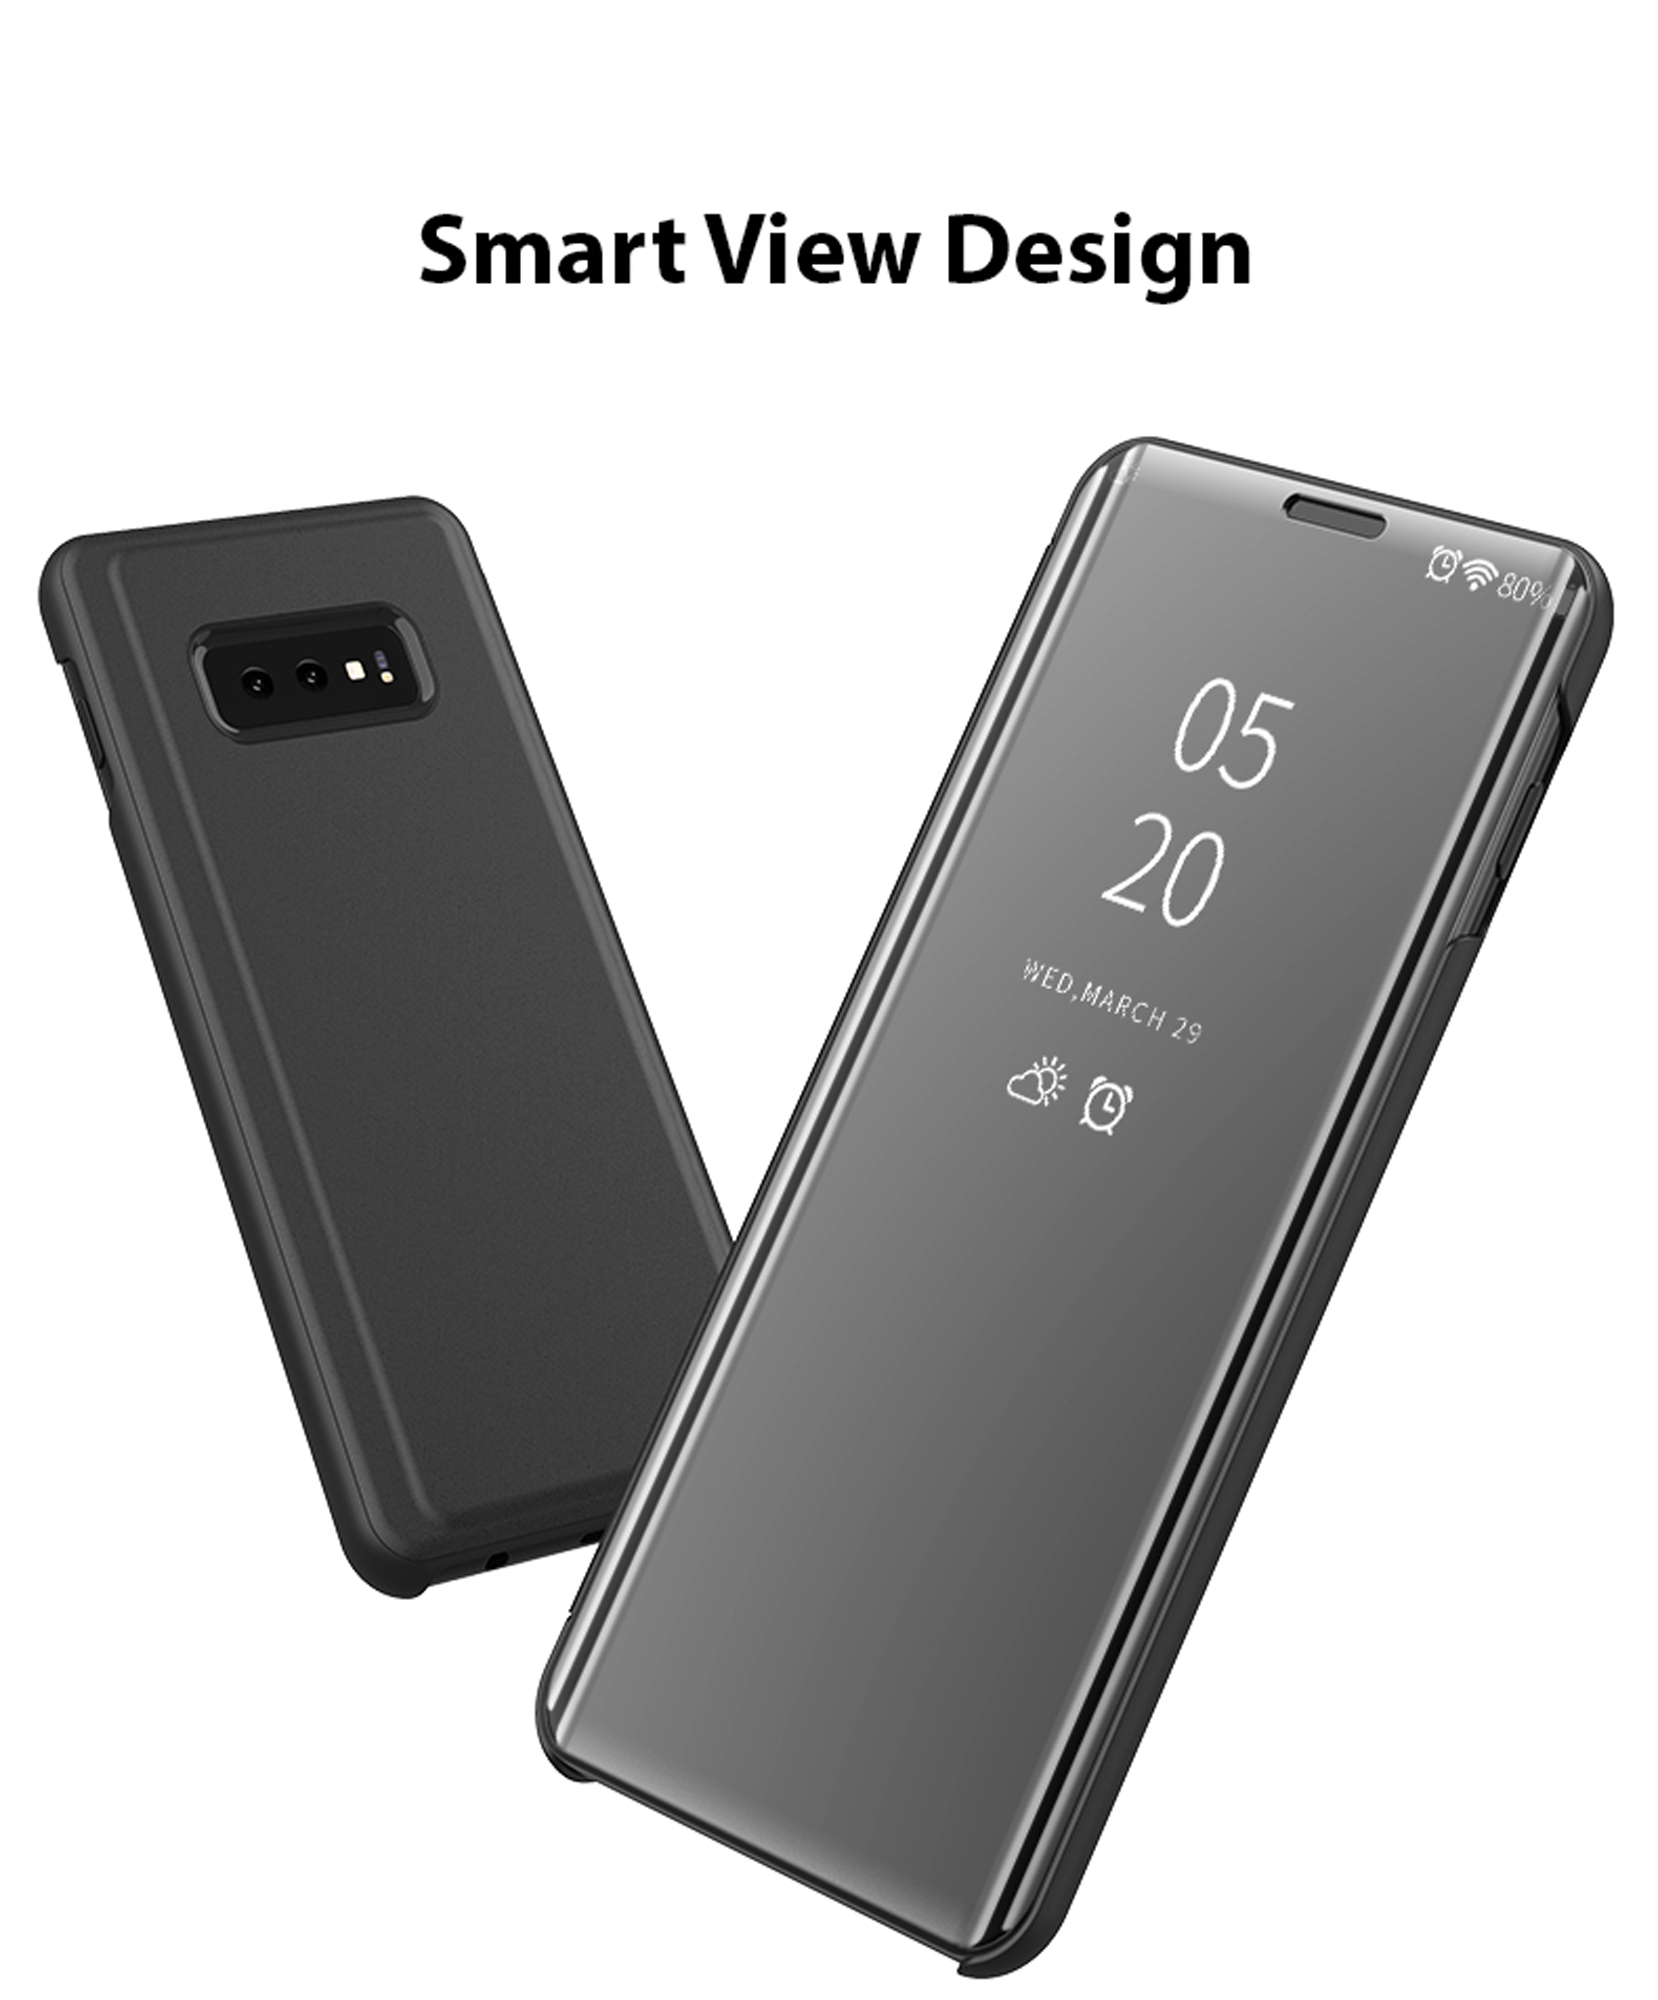 thumbnail 14 - For-Samsung-Galaxy-S9-S10-Plus-Smart-View-Mirror-Leather-Flip-Stand-Case-Cover